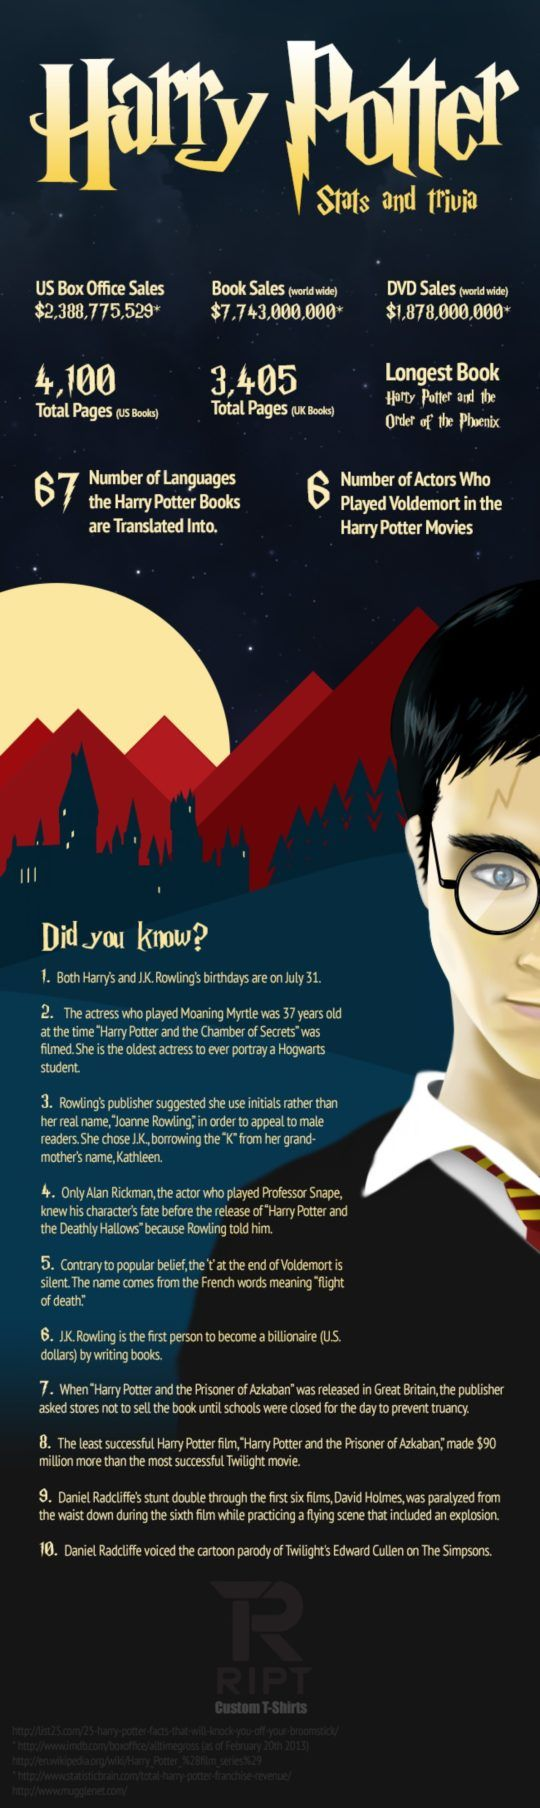 #HarryPotter fanfiction stats and trivia